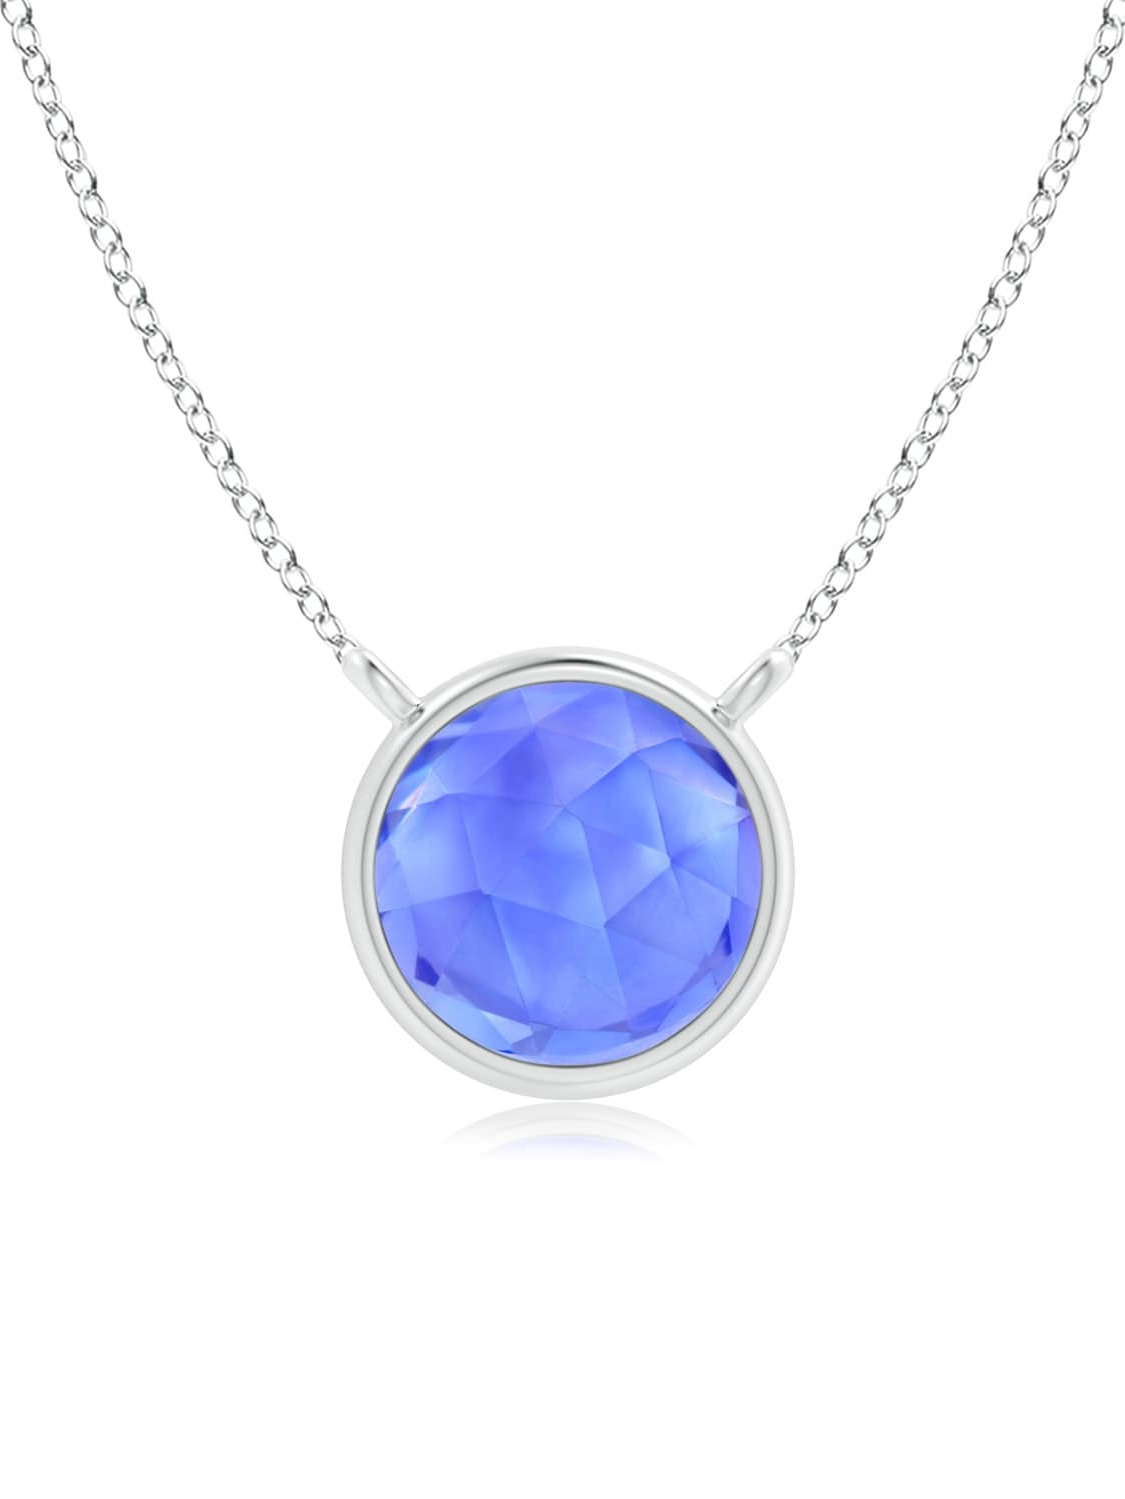 December Birthstone Pendant Necklaces Bezel Set Round Tanzanite Solitaire Necklace in 14K Rose Gold (5mm Tanzanite)... by Angara.com